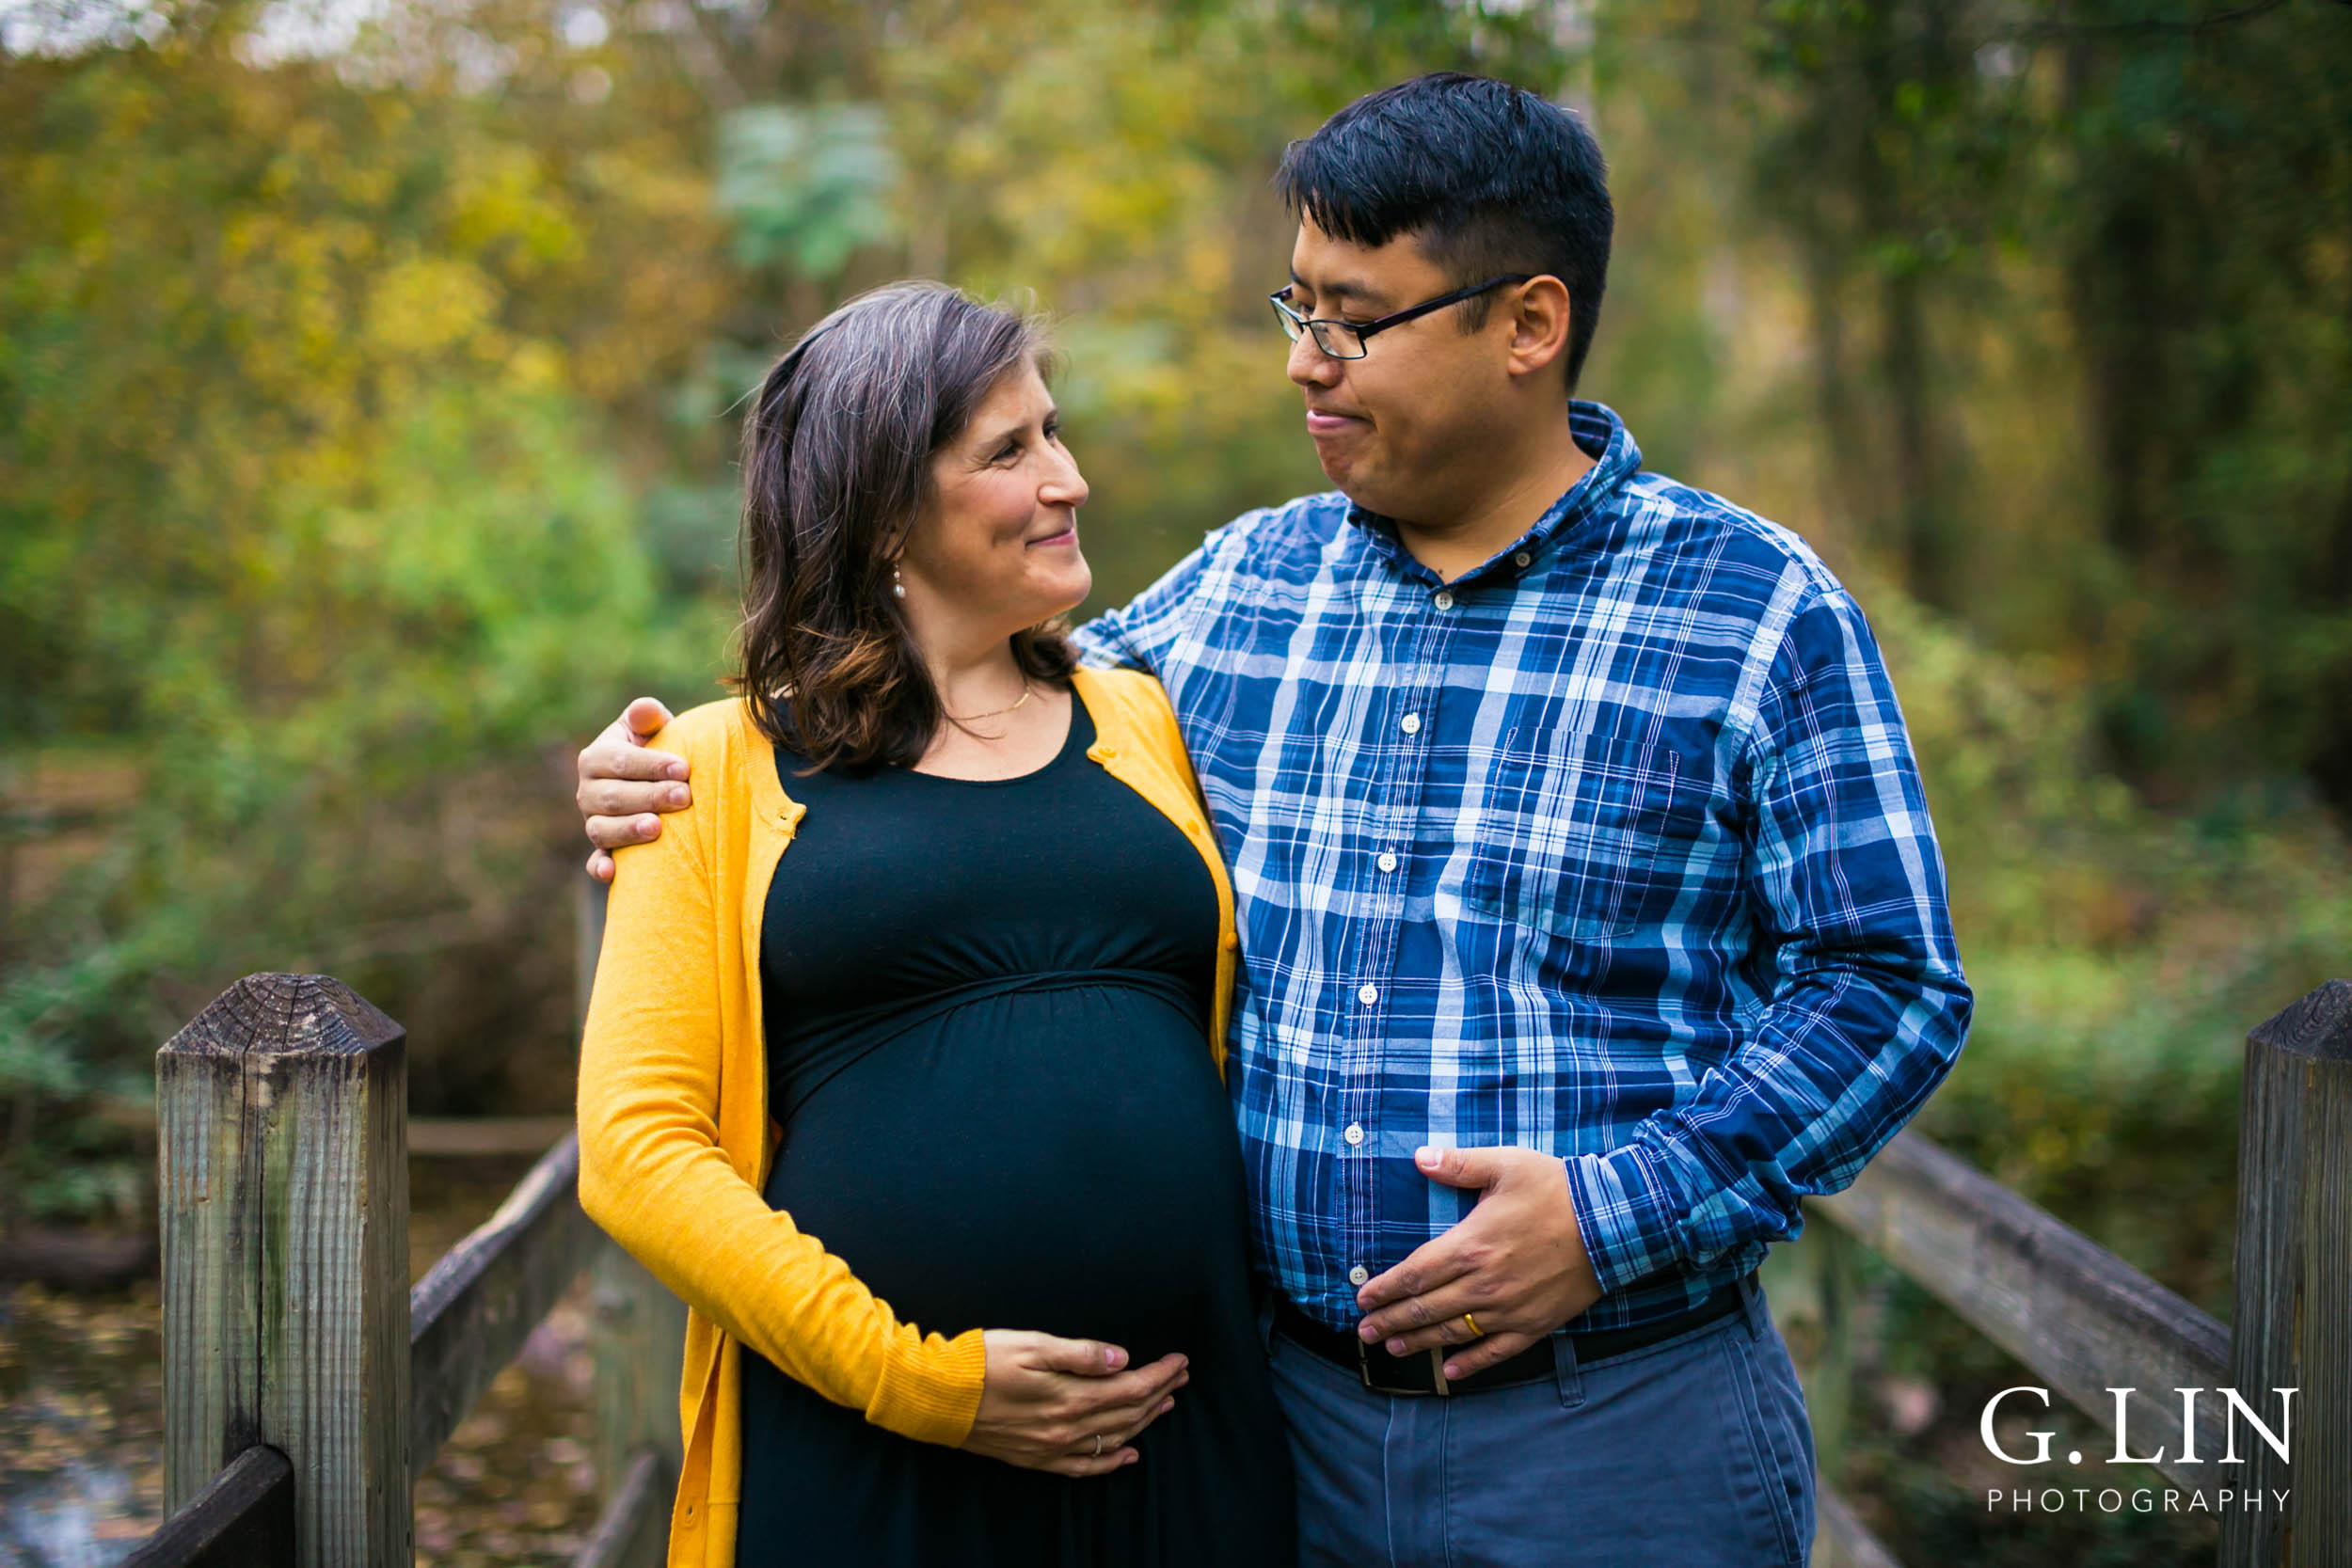 Durham Family Photography | G. Lin Photography | Husband and wife smiling at each other